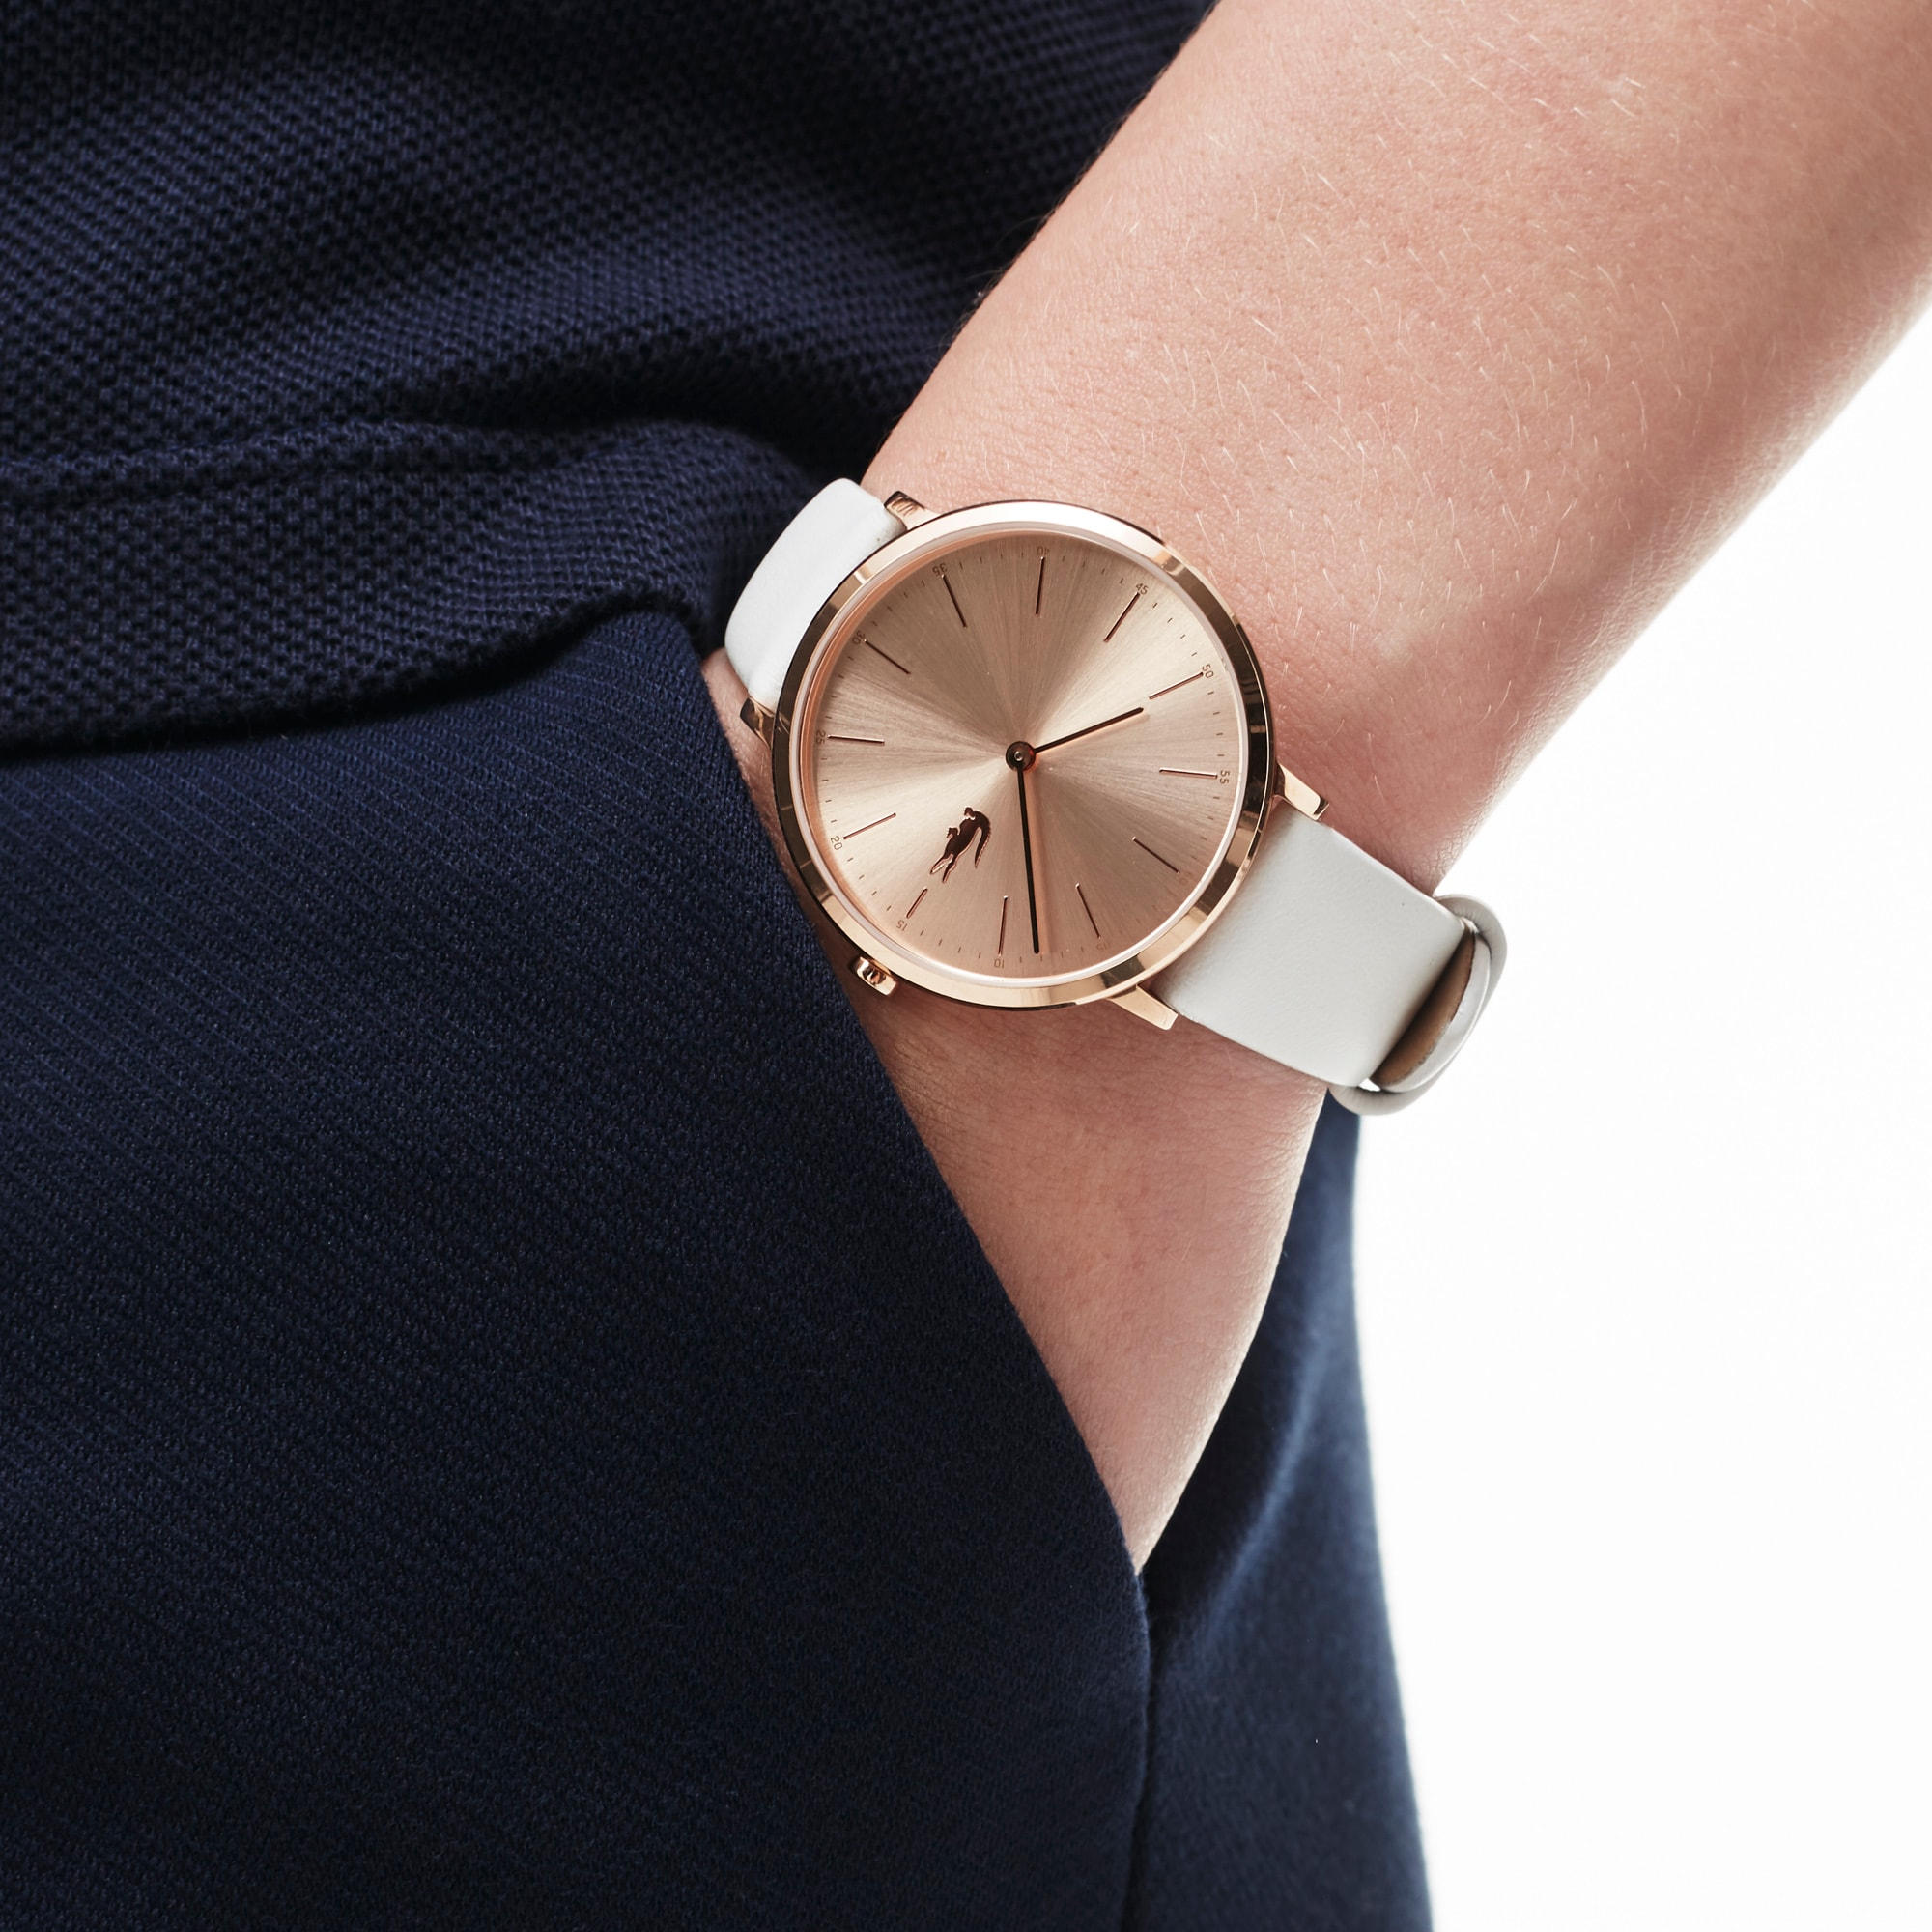 Men's Moon Watch with Pink Leather Strap